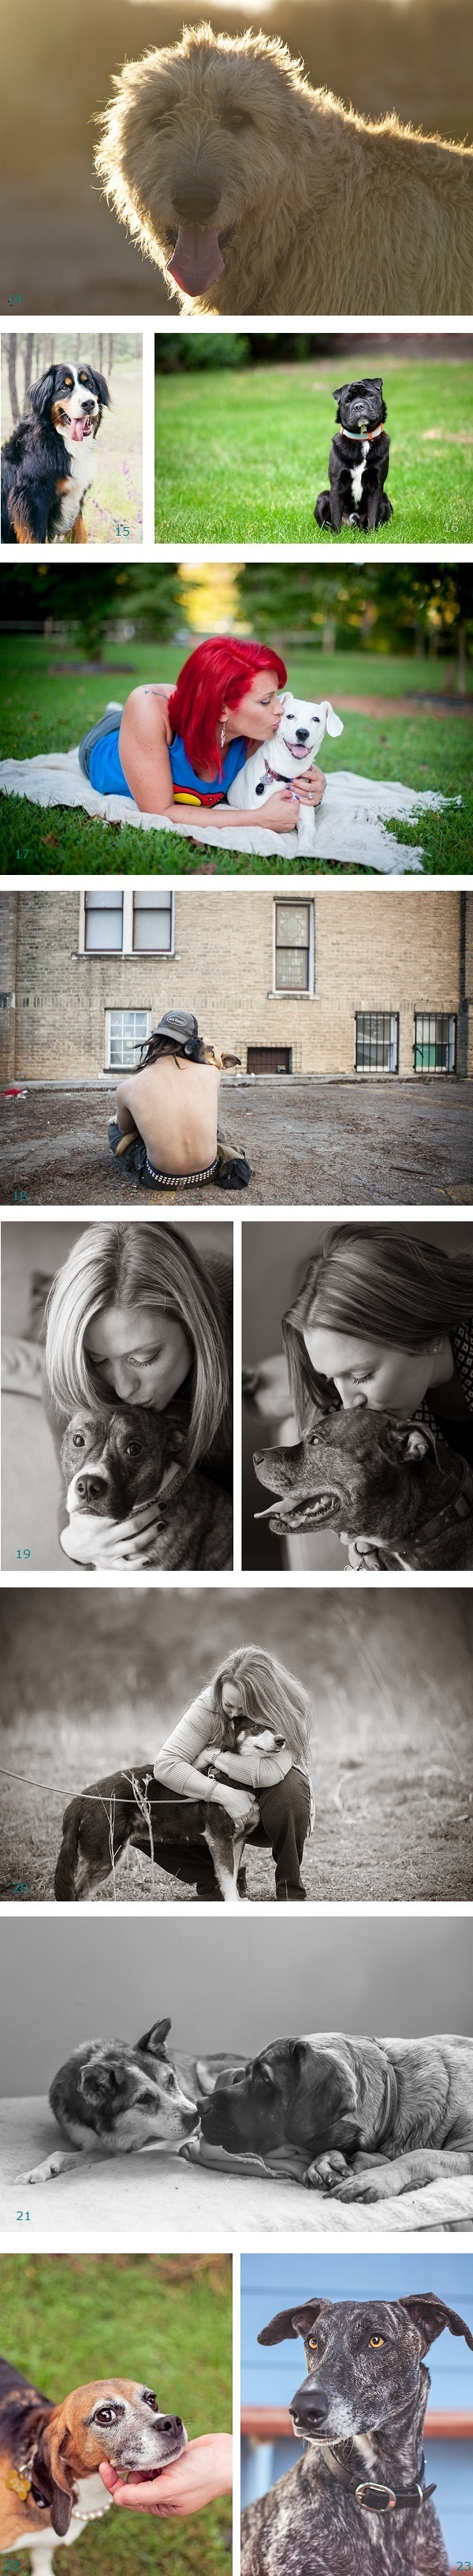 Pawsitively Amazing dogs: cancer survivor, homeless, pit bull ambassadors, therapy dogs,